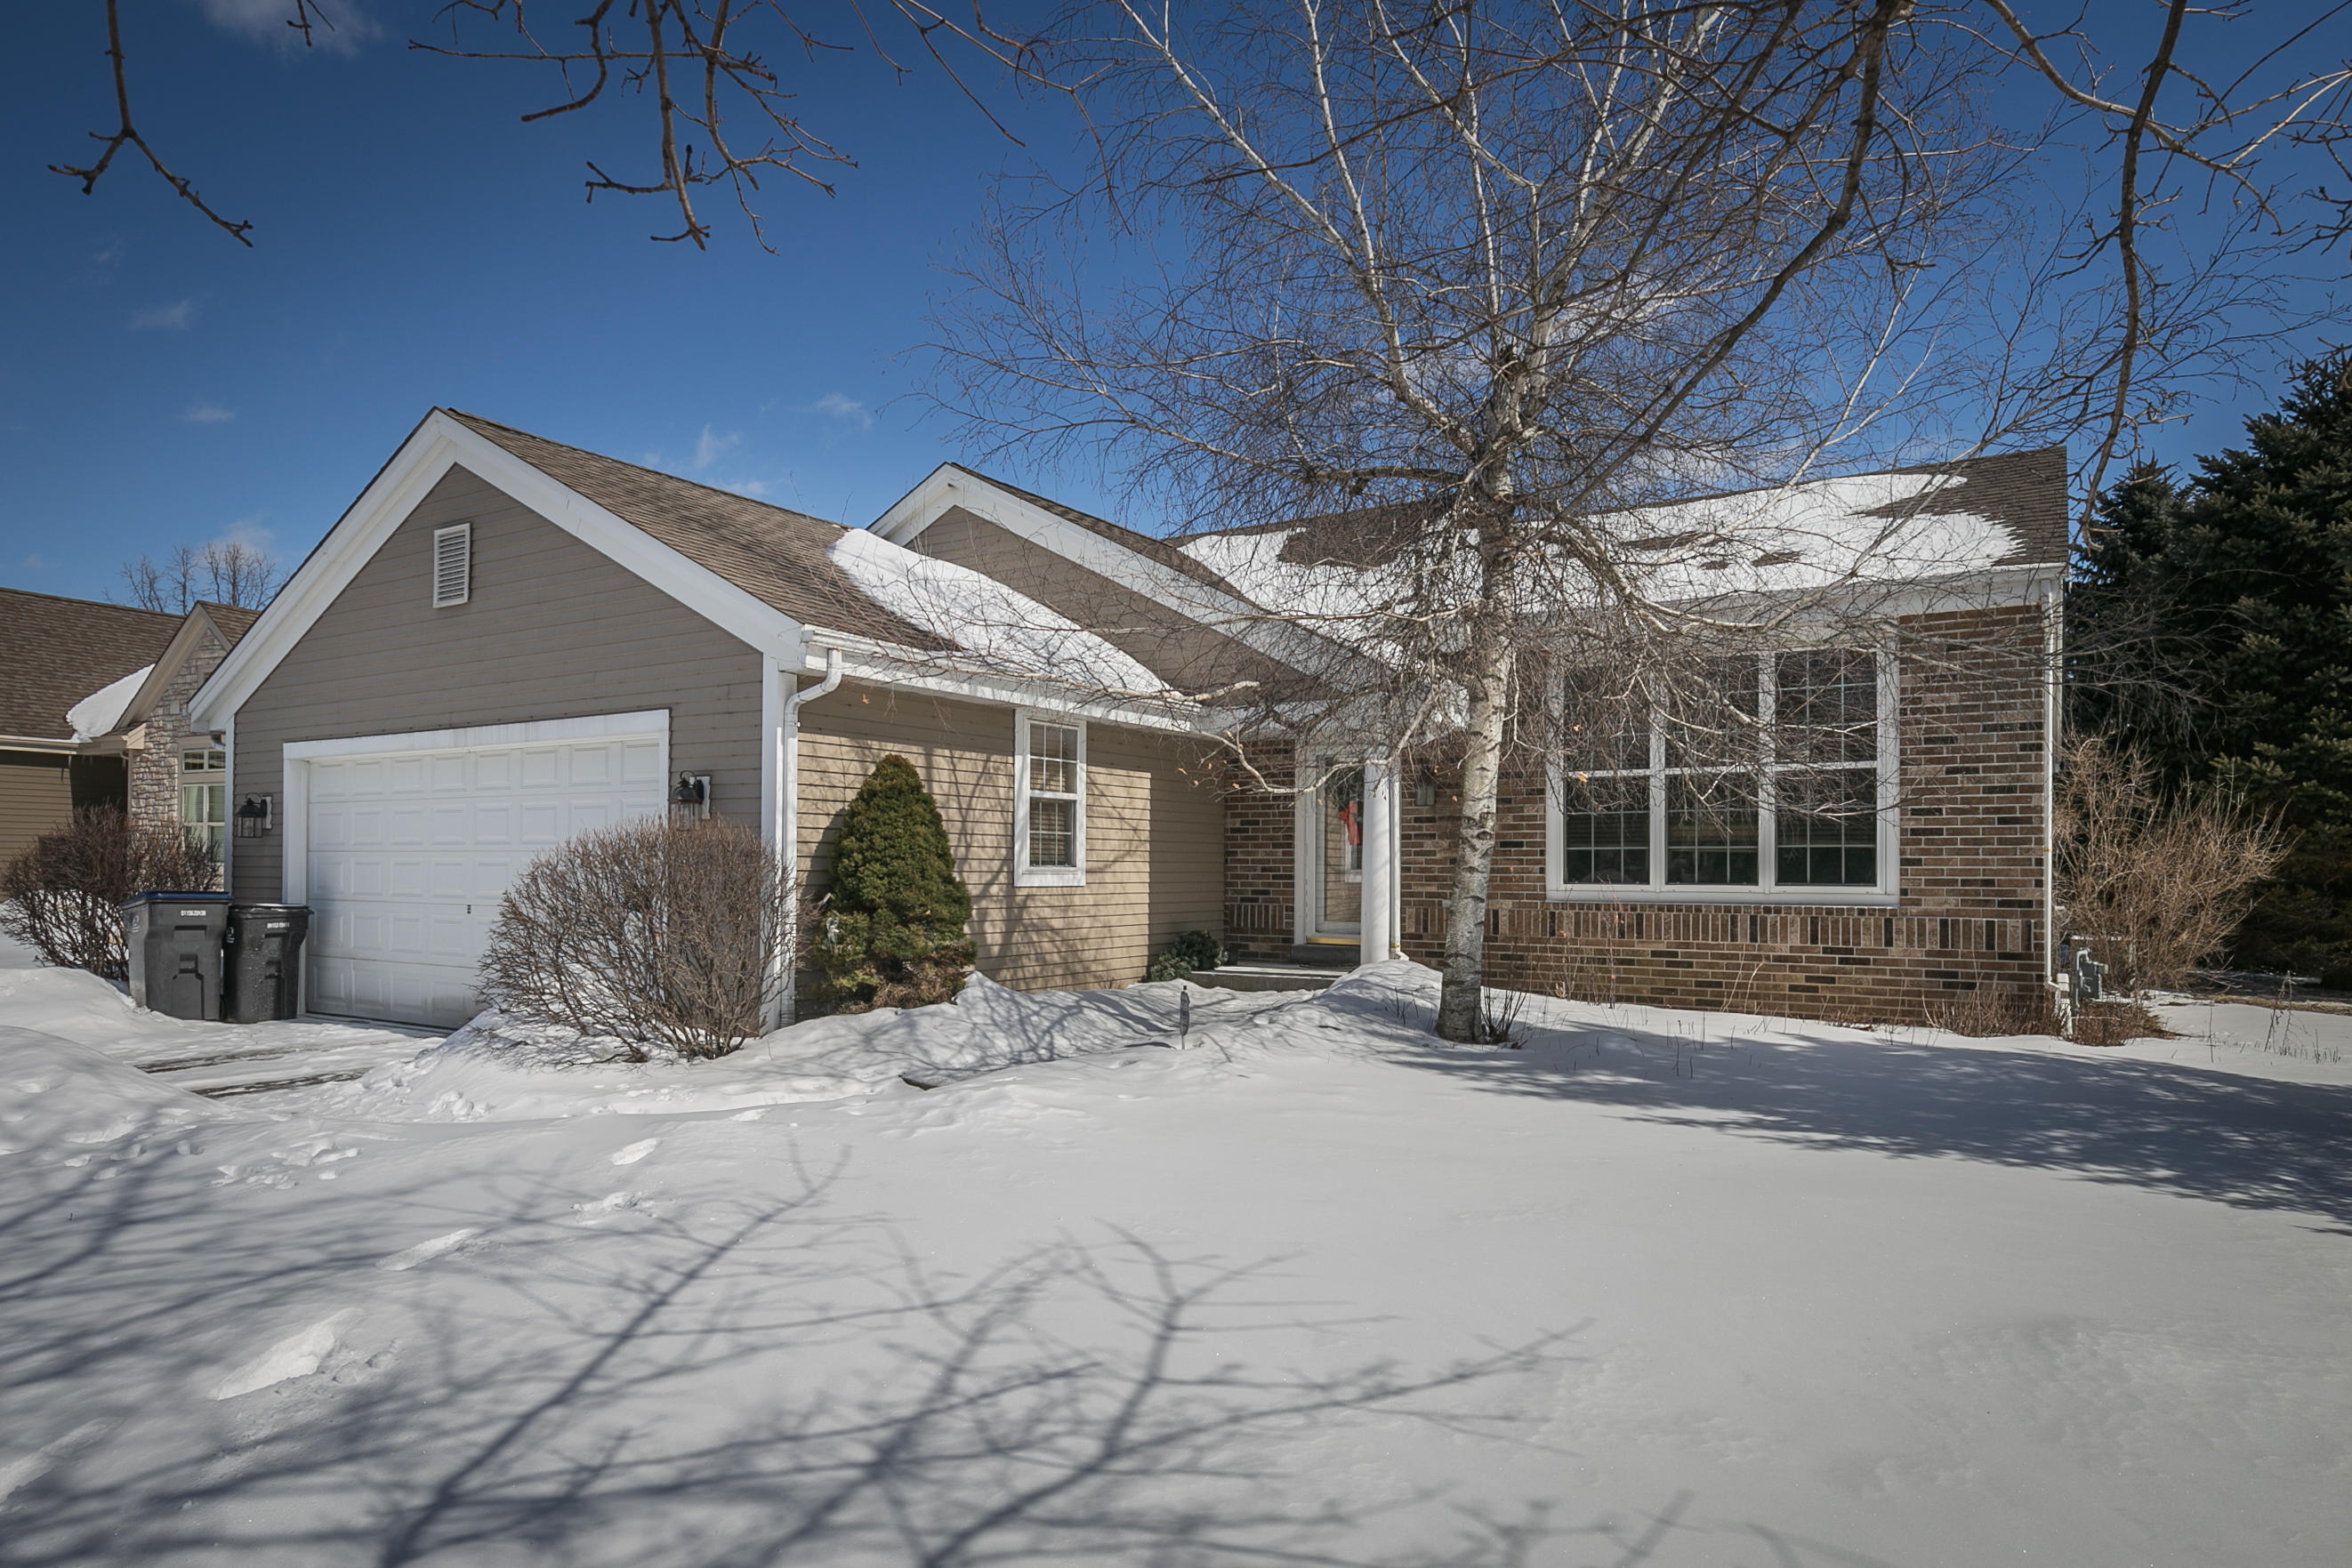 1240 Chesterwood Ln, Pewaukee, Wisconsin 53072, 3 Bedrooms Bedrooms, ,2 BathroomsBathrooms,Single-Family,For Sale,Chesterwood Ln,1625785